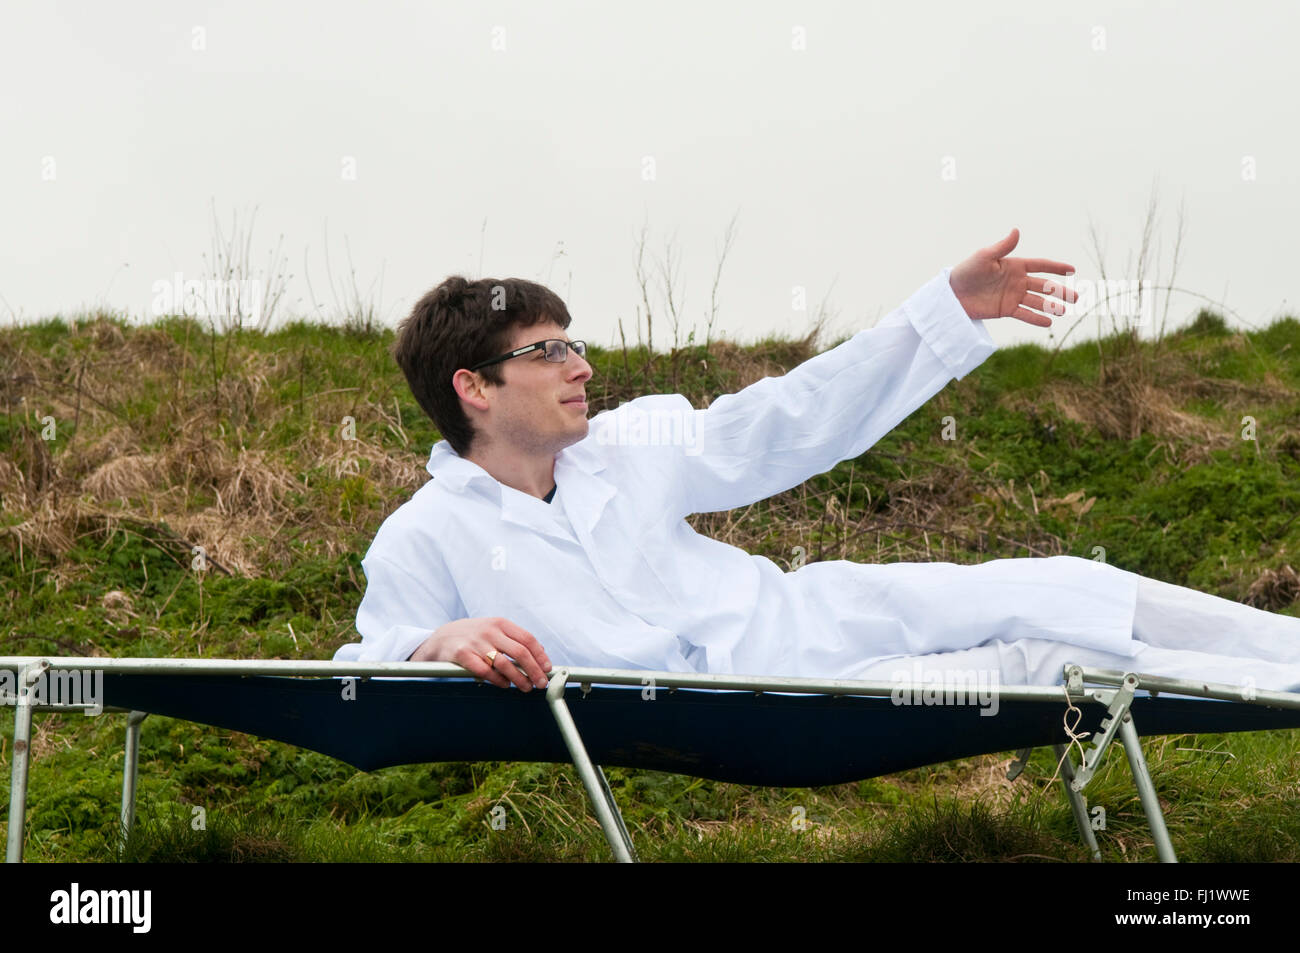 Man in a white doctor's or lab coat laying back on a blue camp bed waving his hand - Stock Image